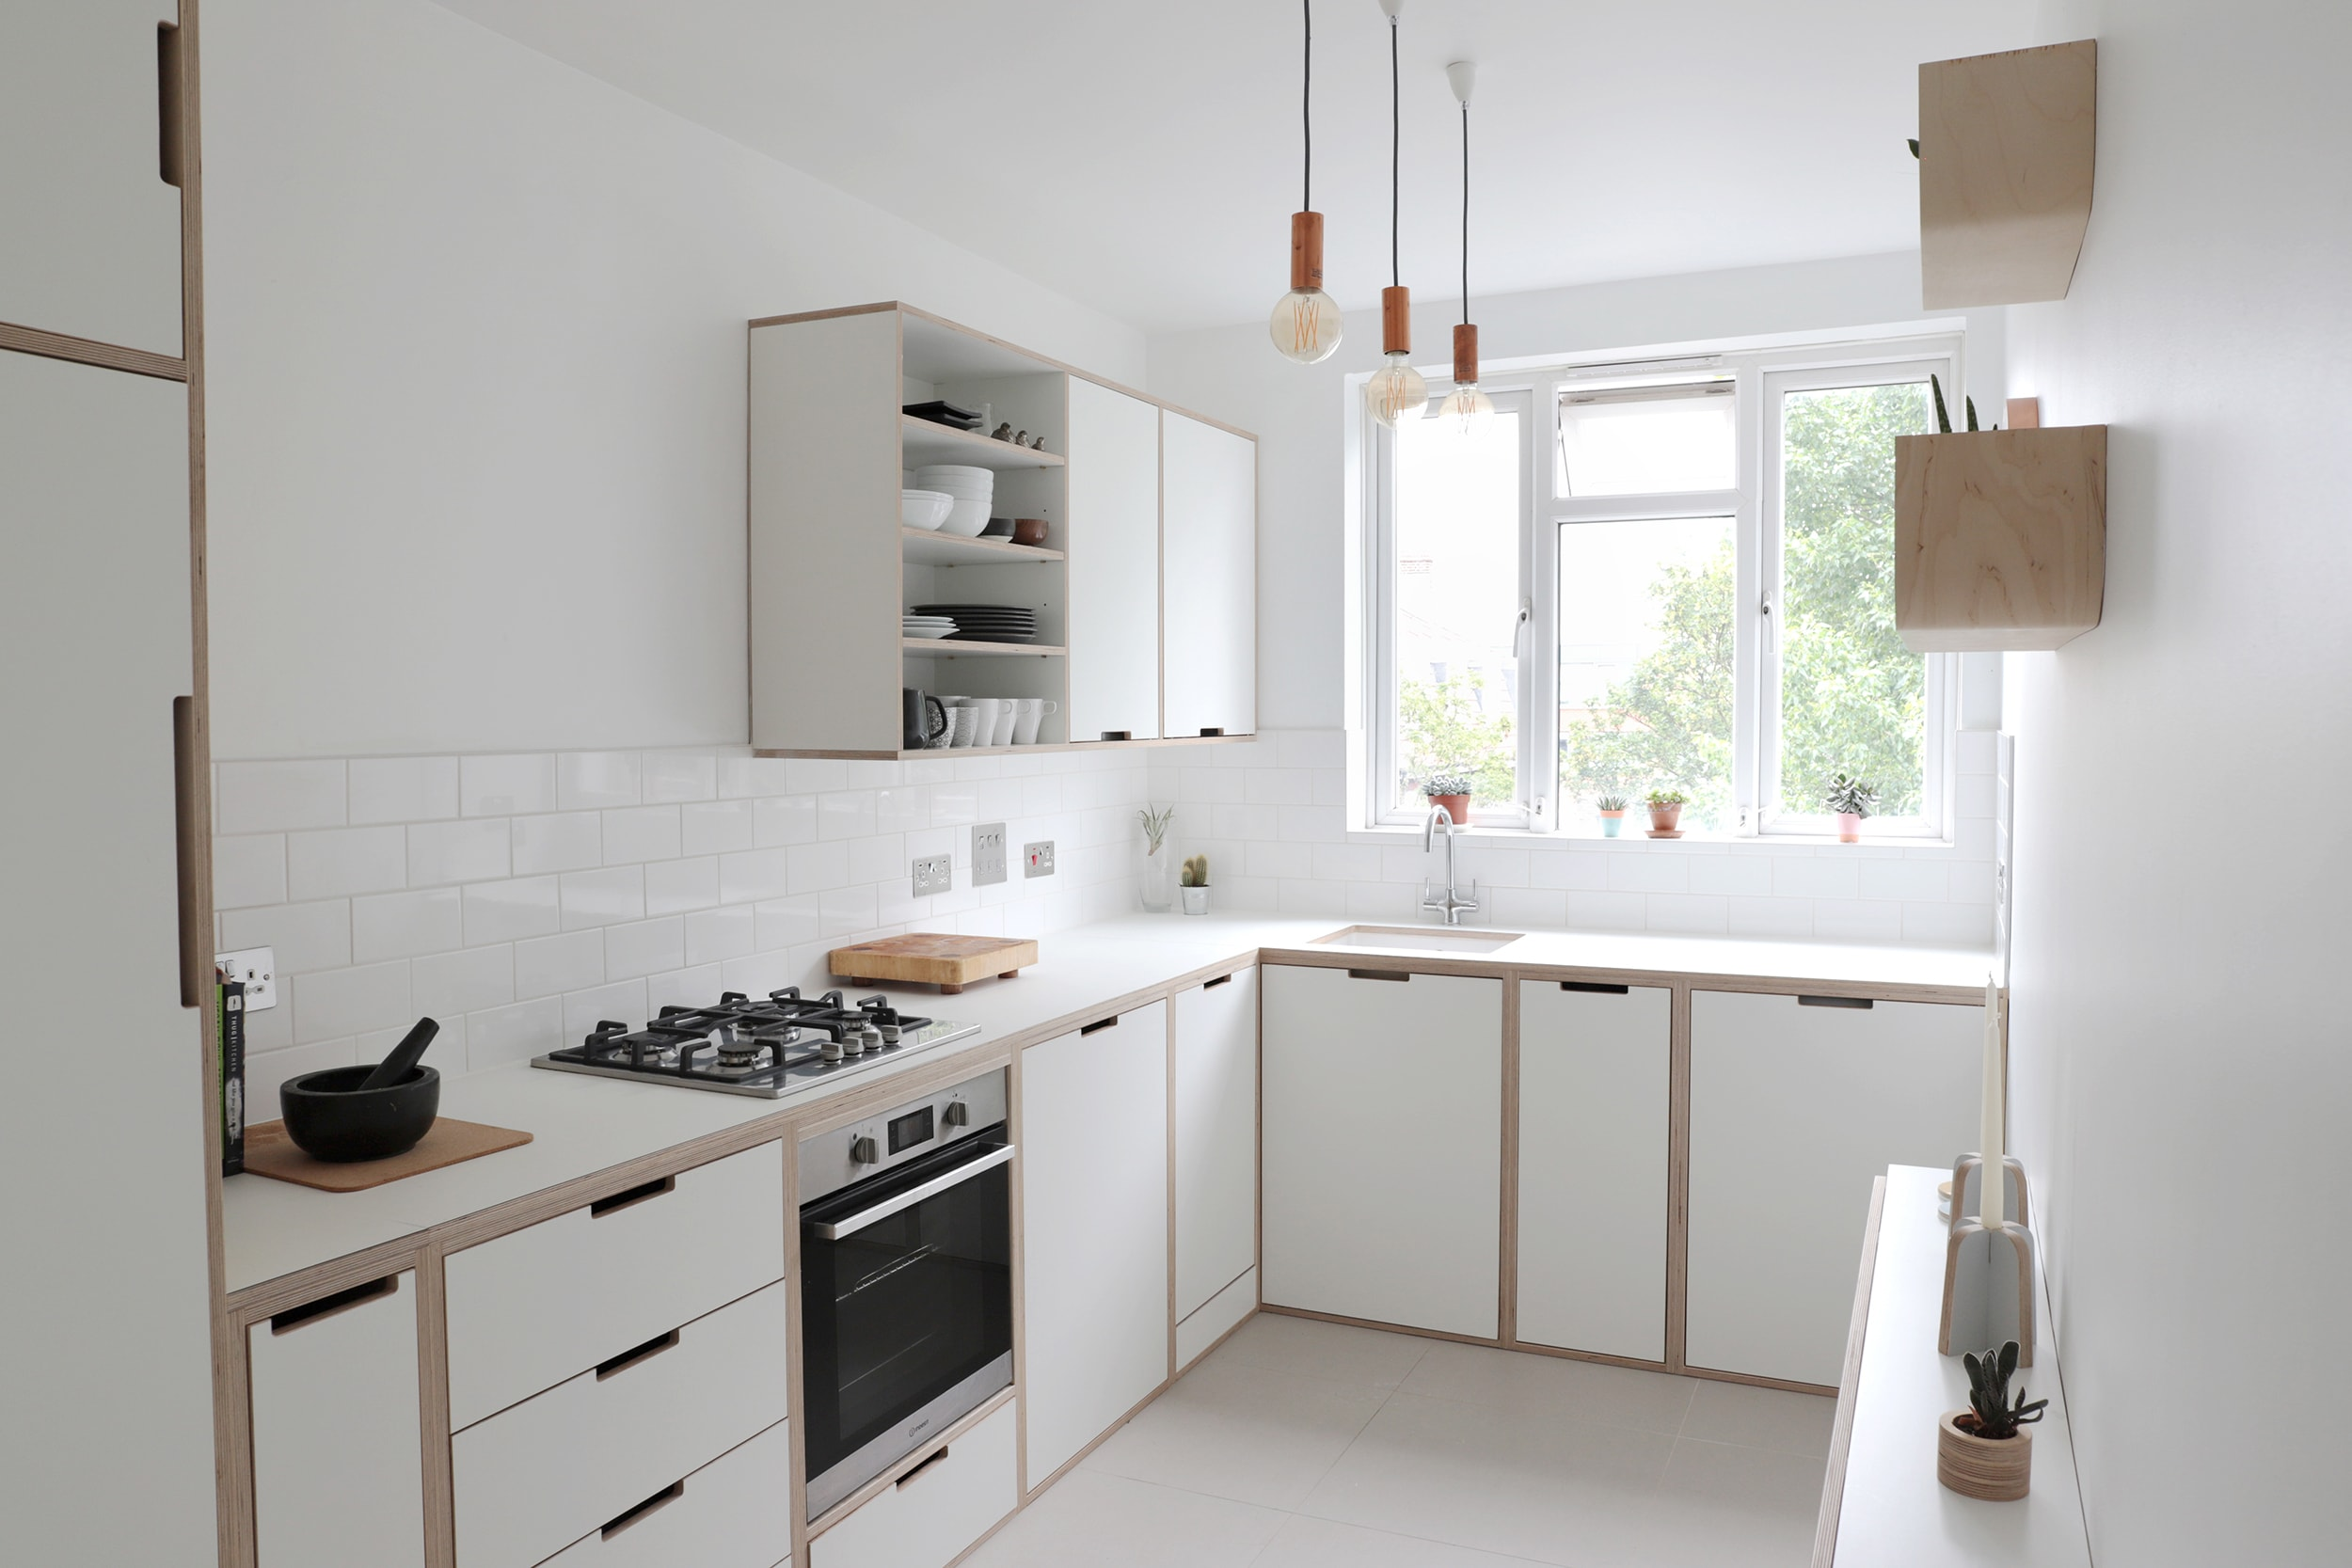 Sarah and Peter's Clapton kitchen after Lozi's renovations